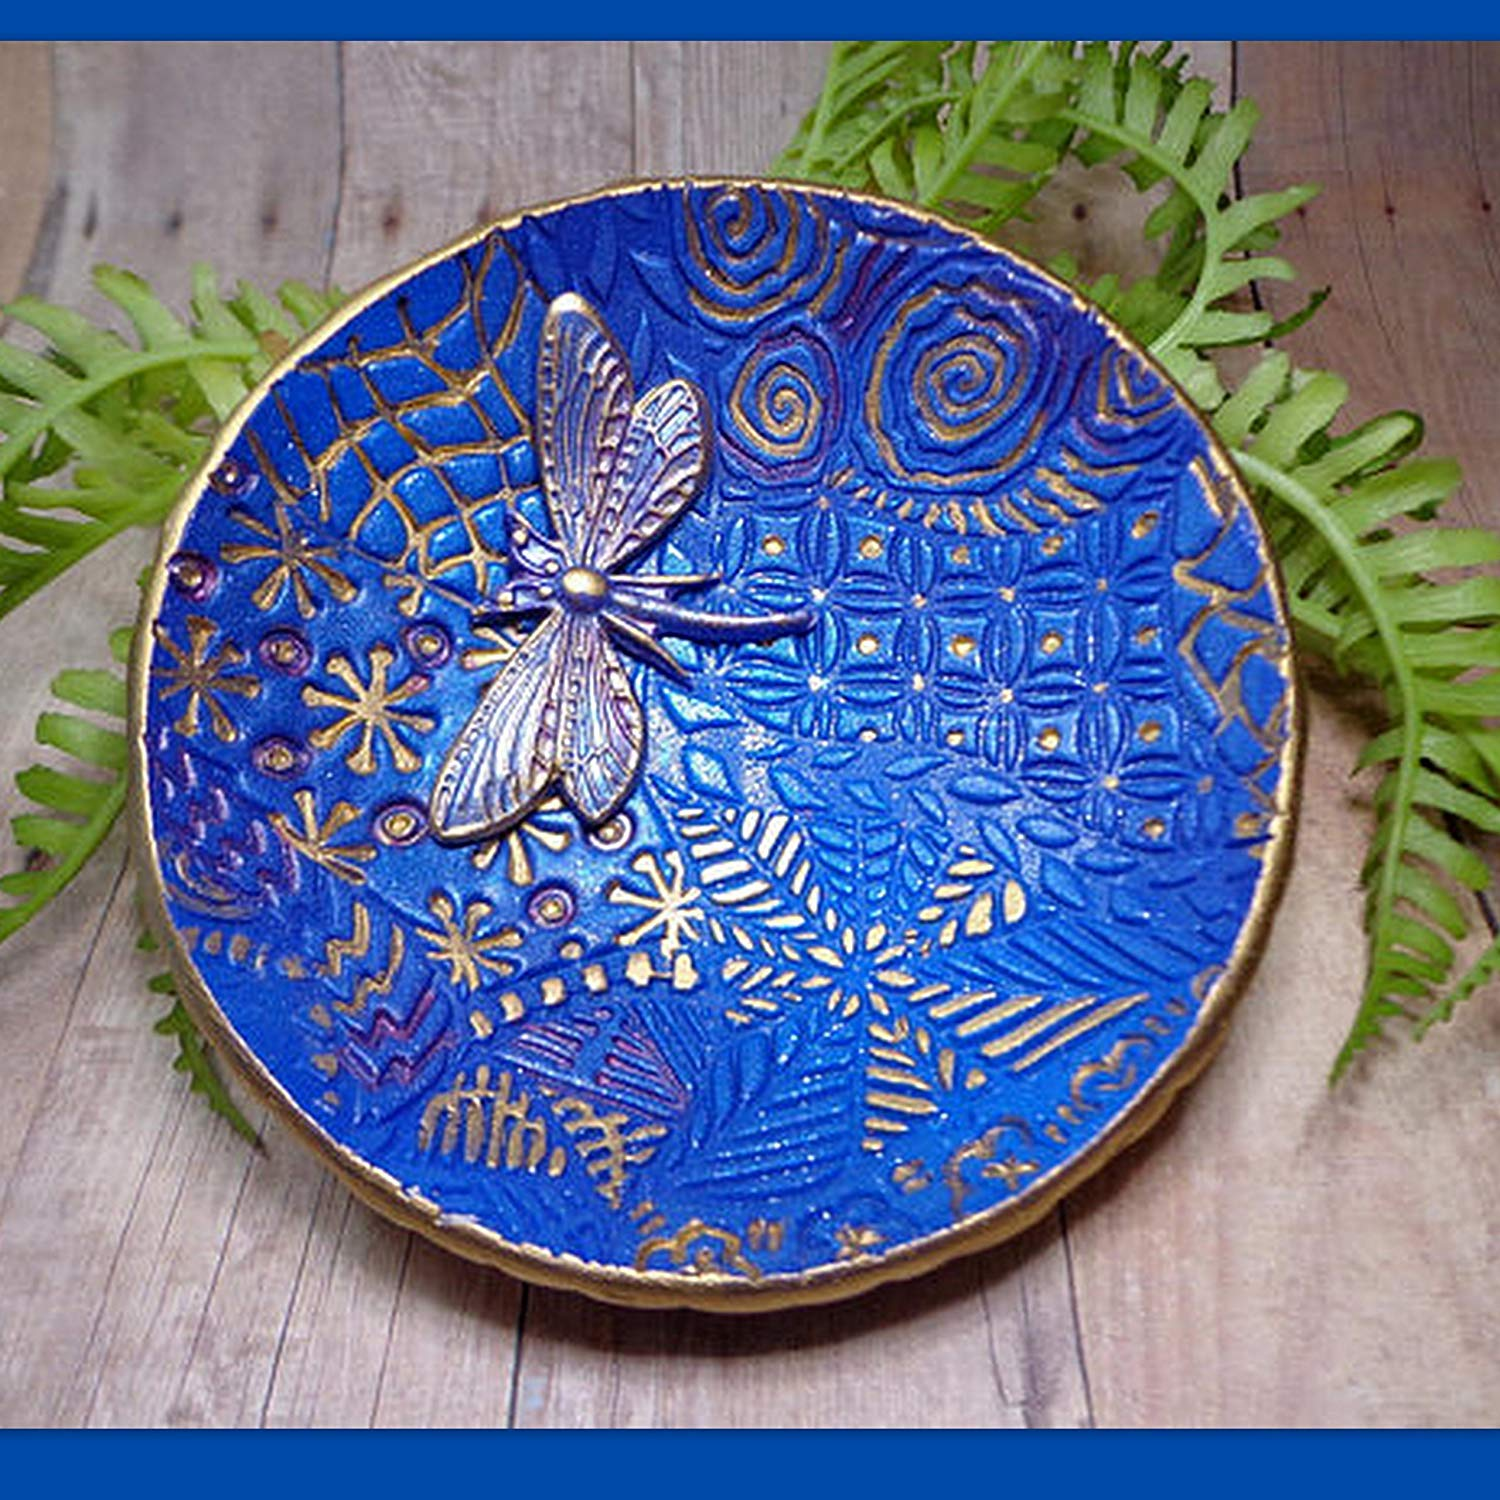 Moroccan Dragonfly Ring Dish- Handmade Jewelry Holder-Trinket Dish- Polymer Clay Dish- Home Decor- Gifts for Her Birthday